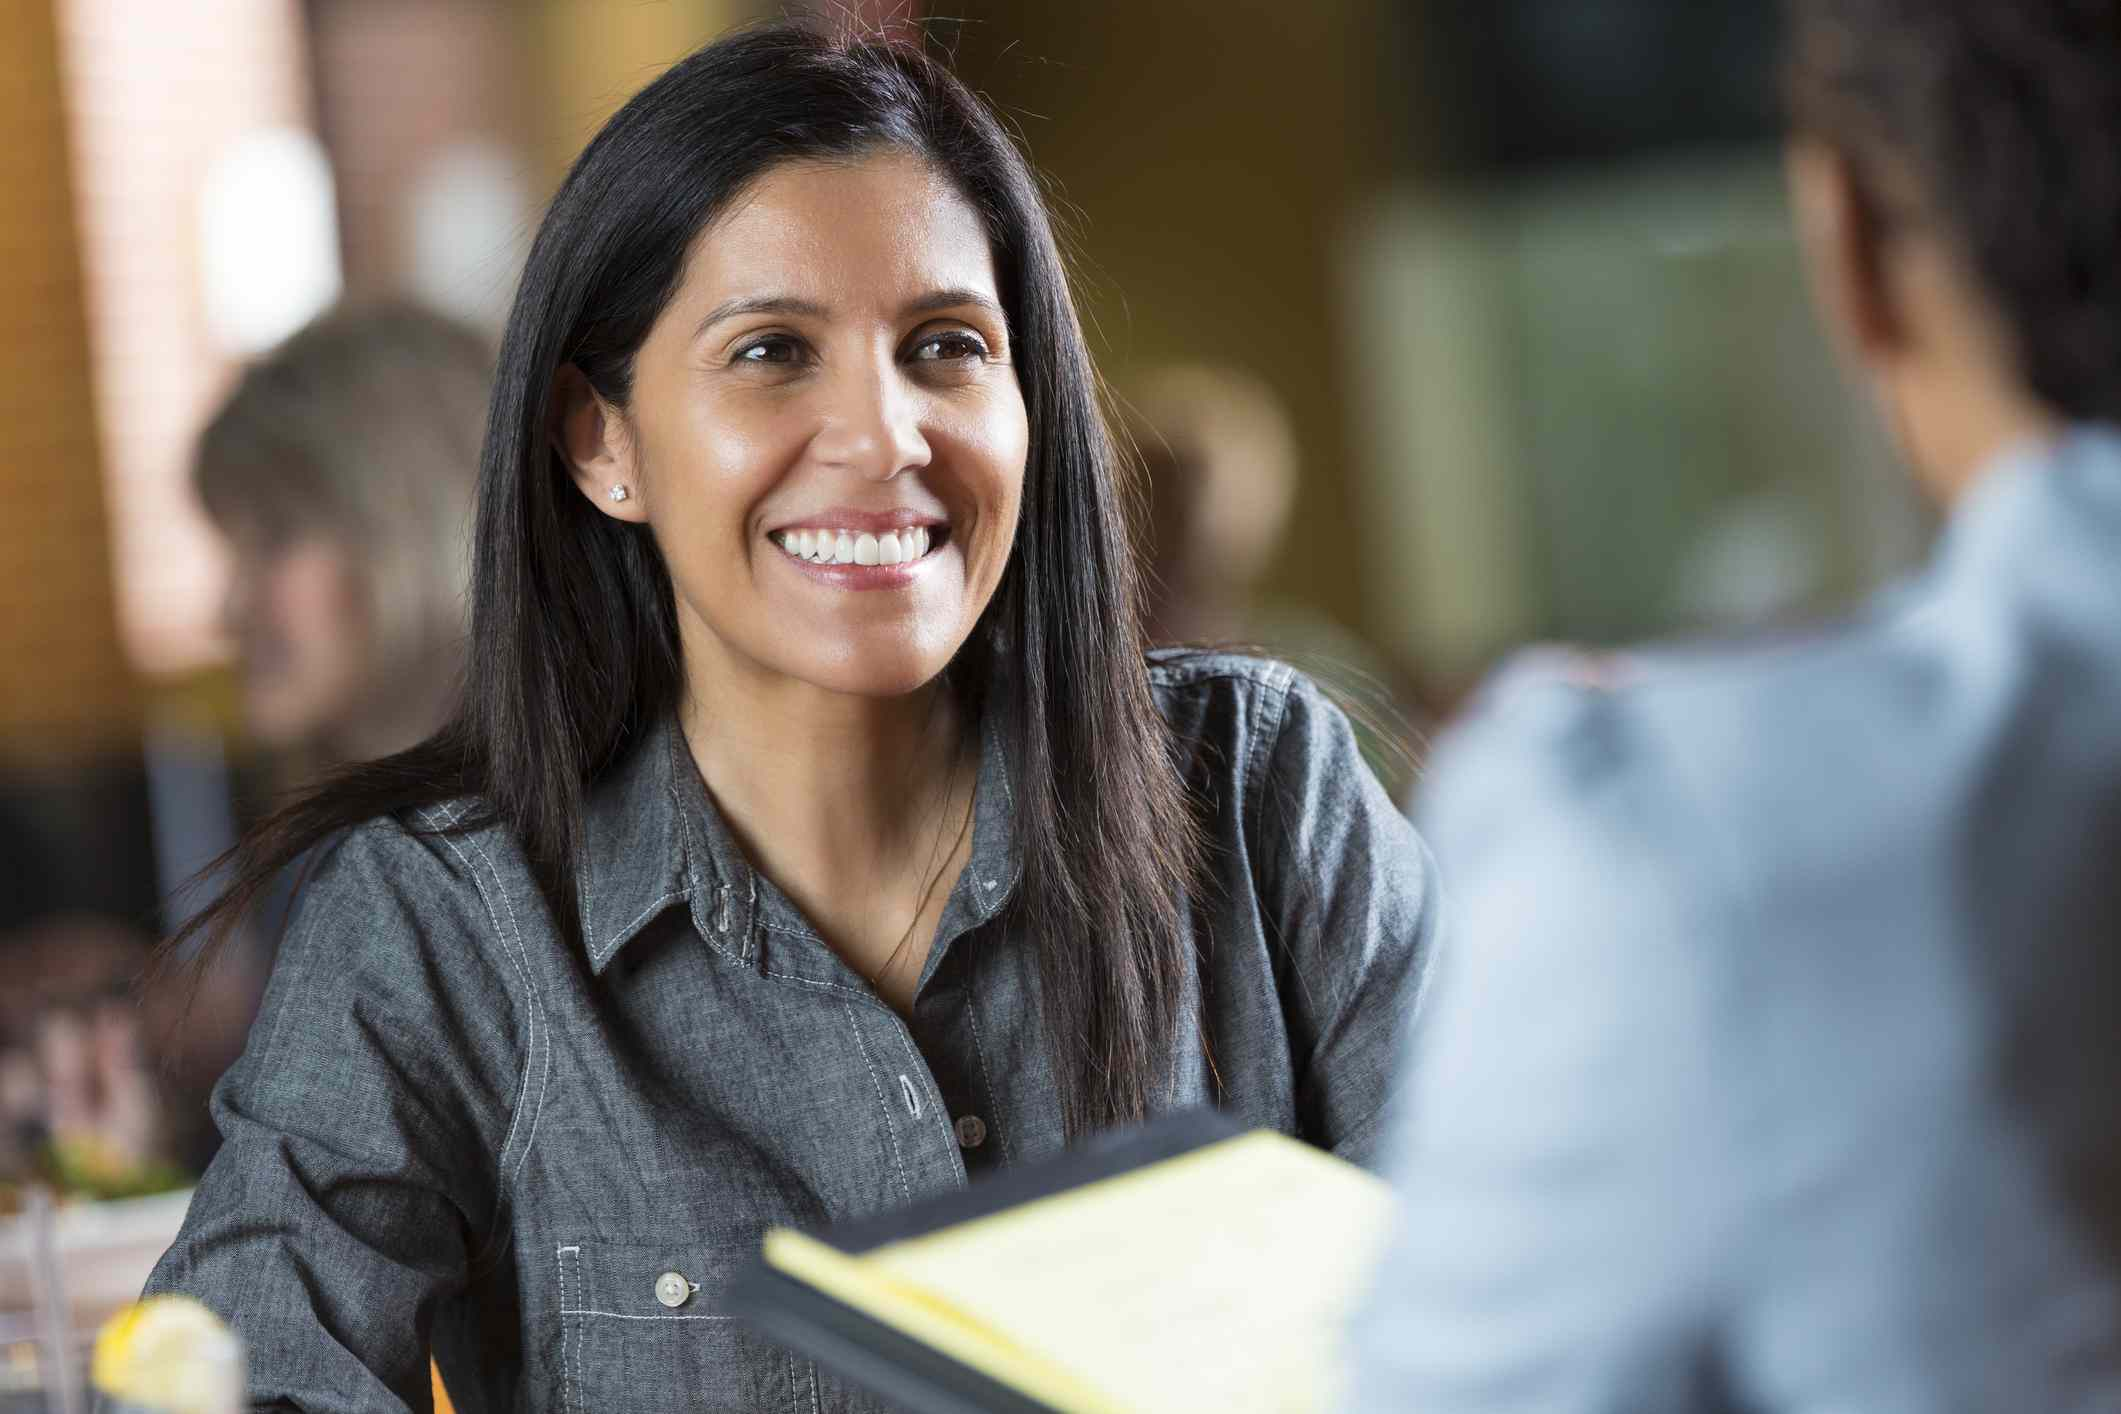 Smiling woman at a job interview